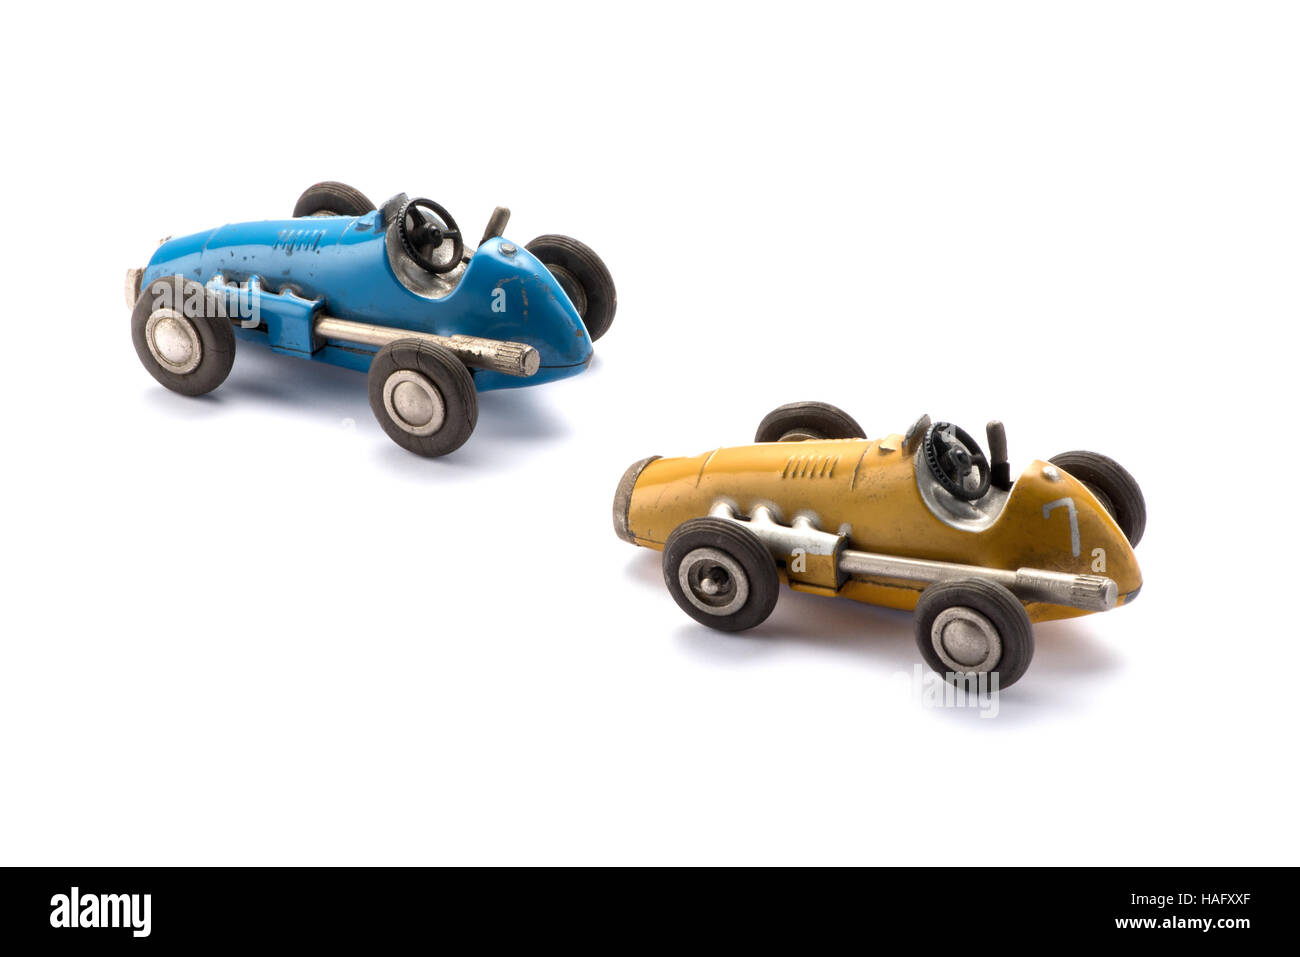 Two vintage style model toy racing cars in blue and yellow Stock Photo